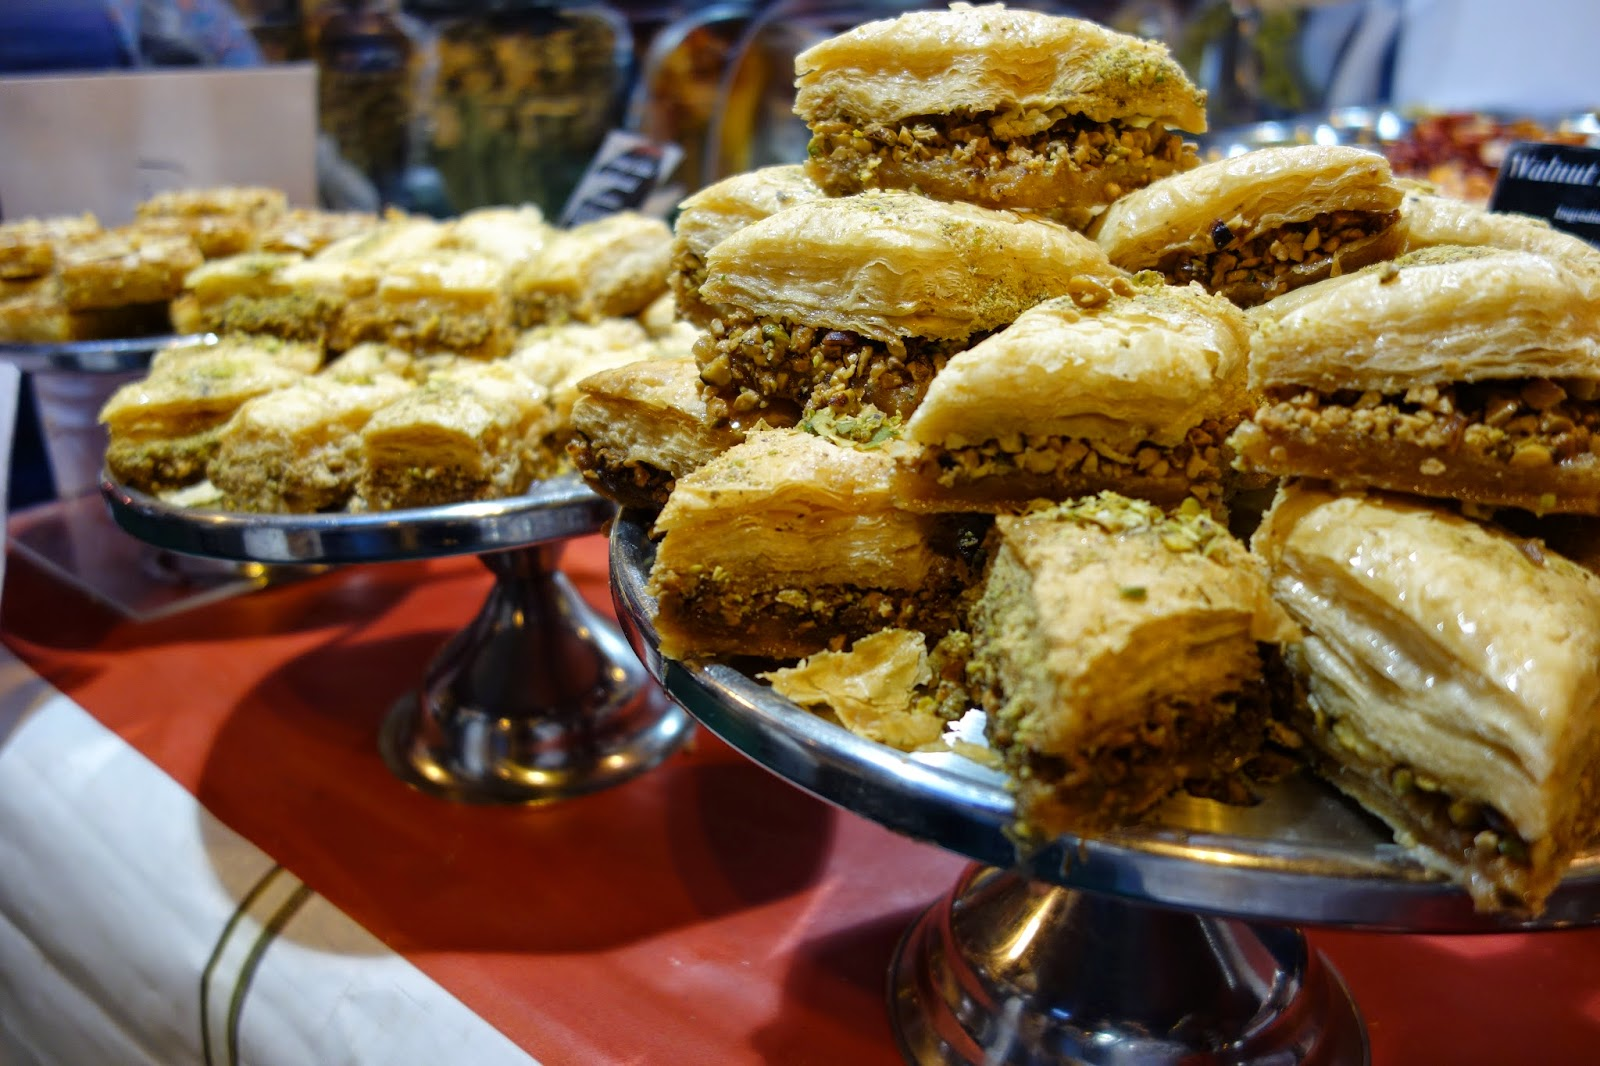 Savoury pastries on display at the Good Food Show Winter